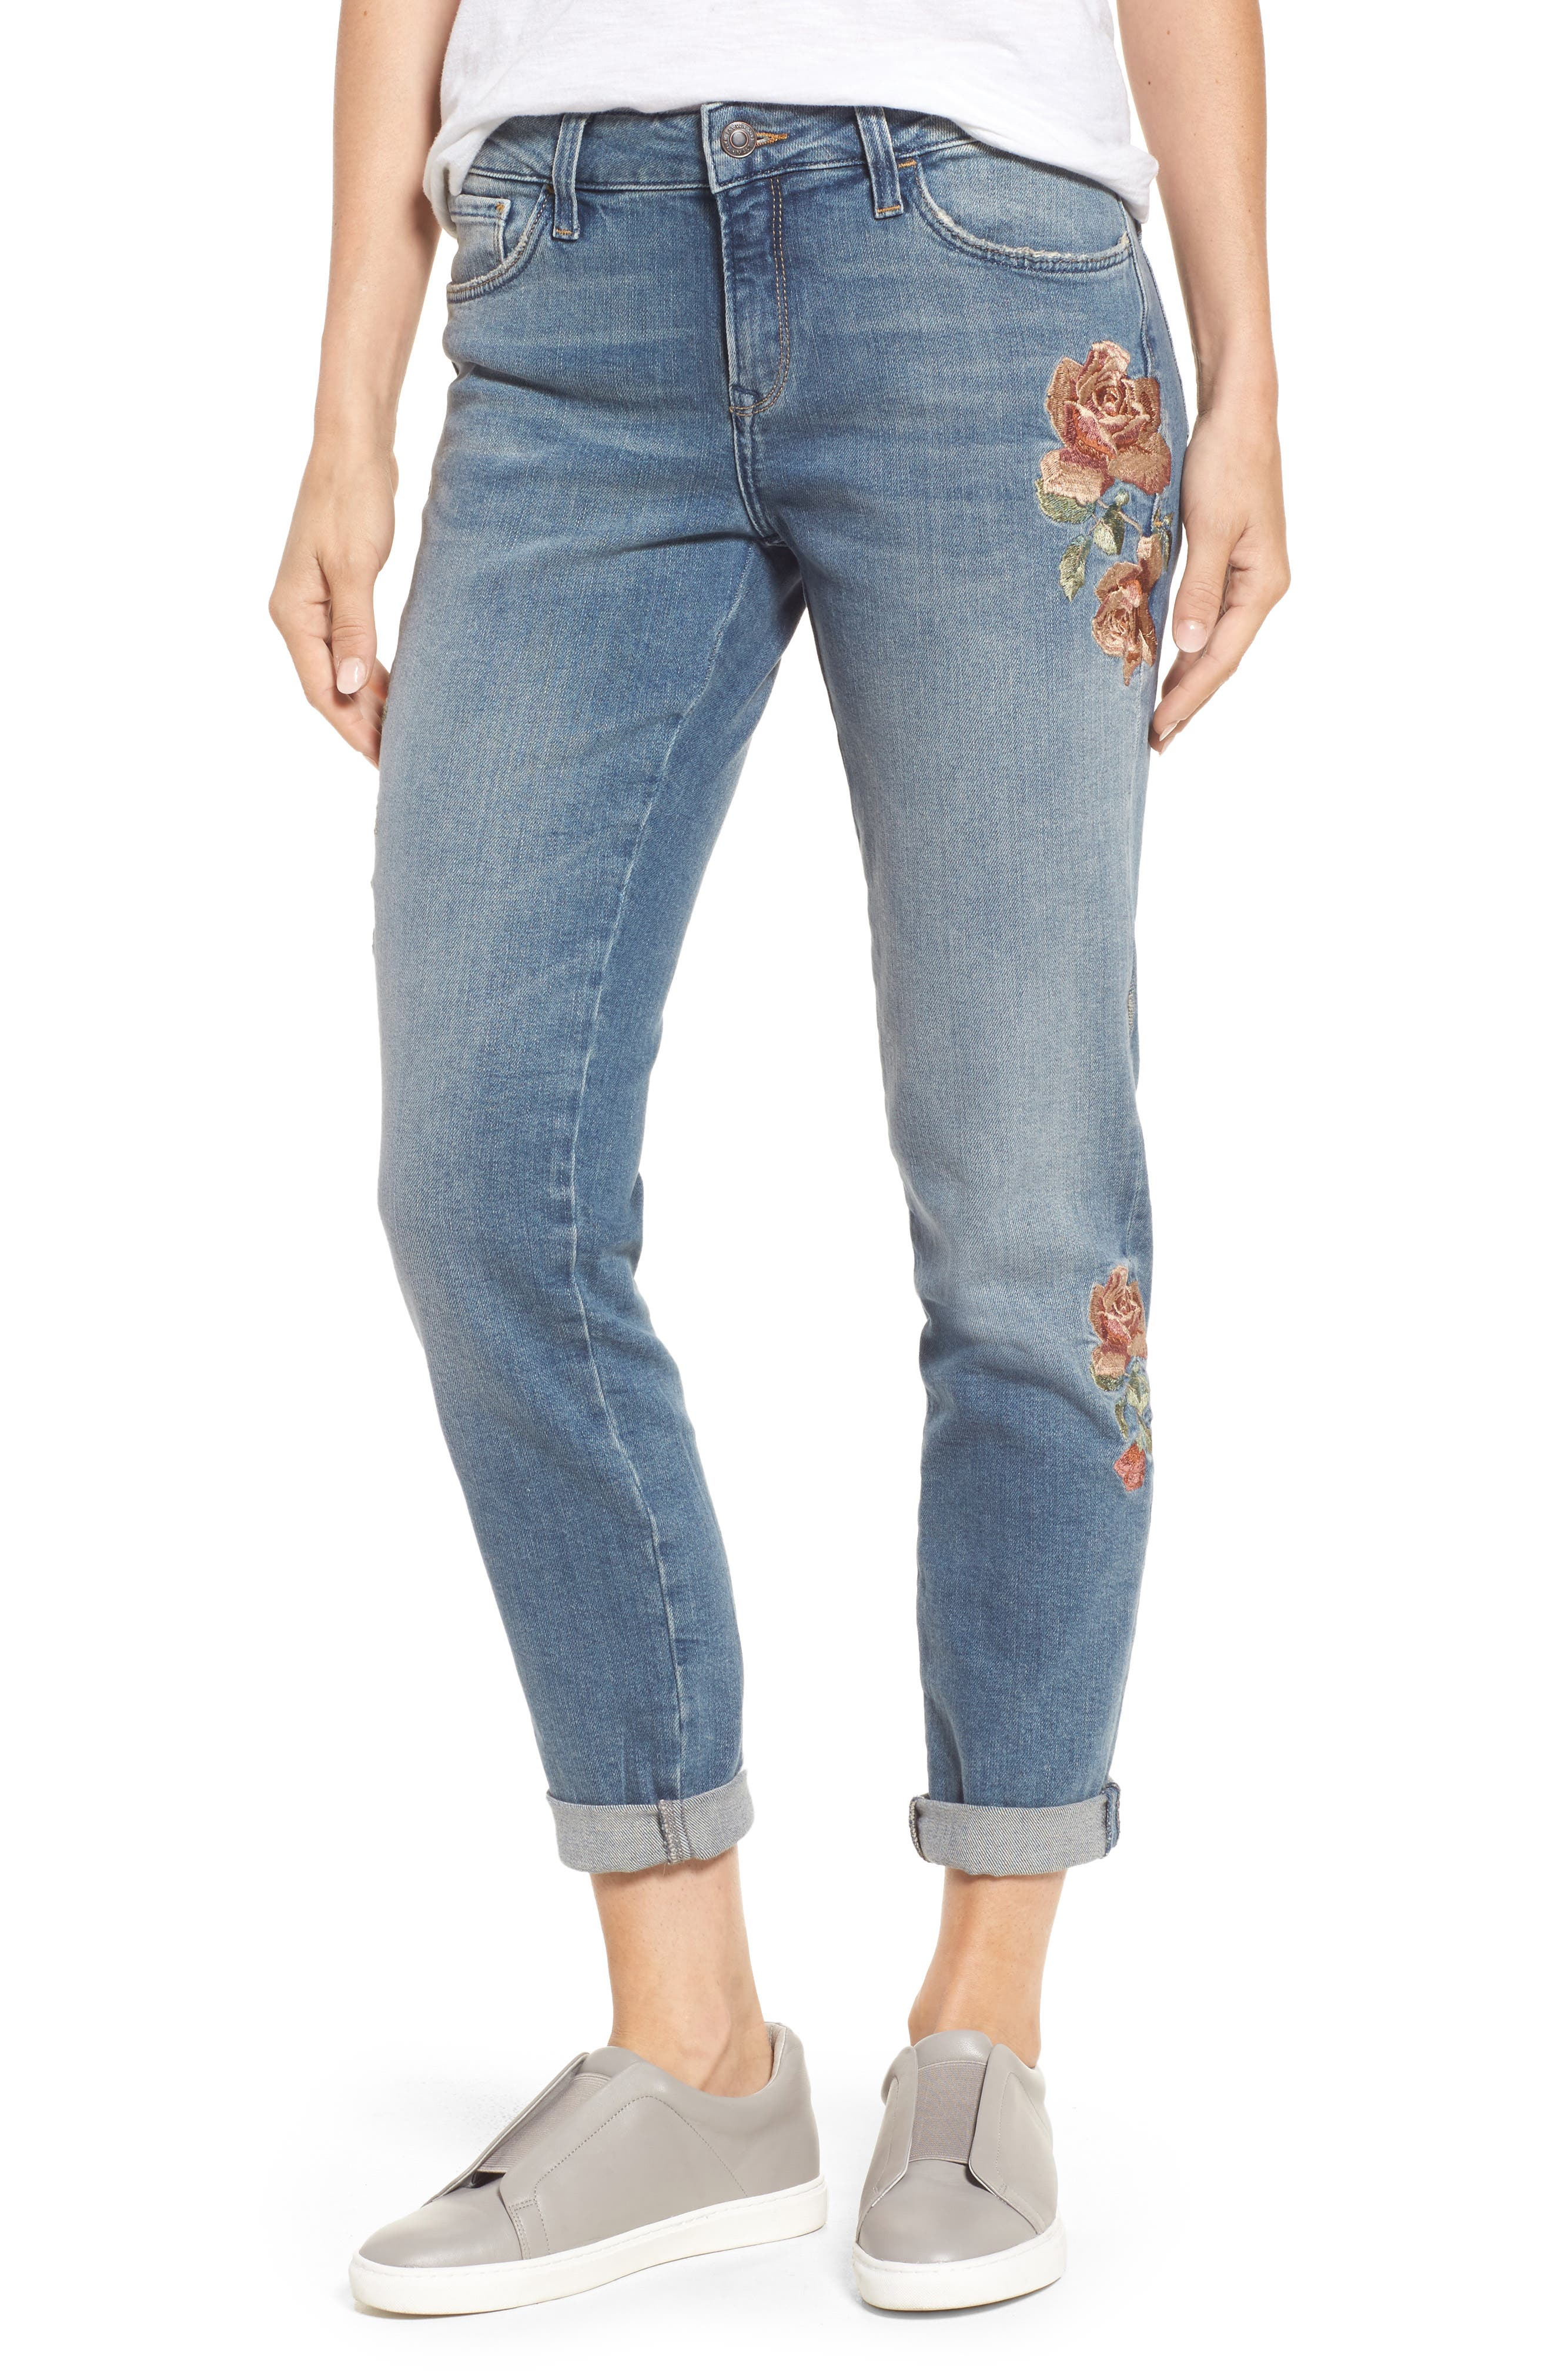 Ada Embroidered Boyfriend Jeans,                             Main thumbnail 1, color,                             420